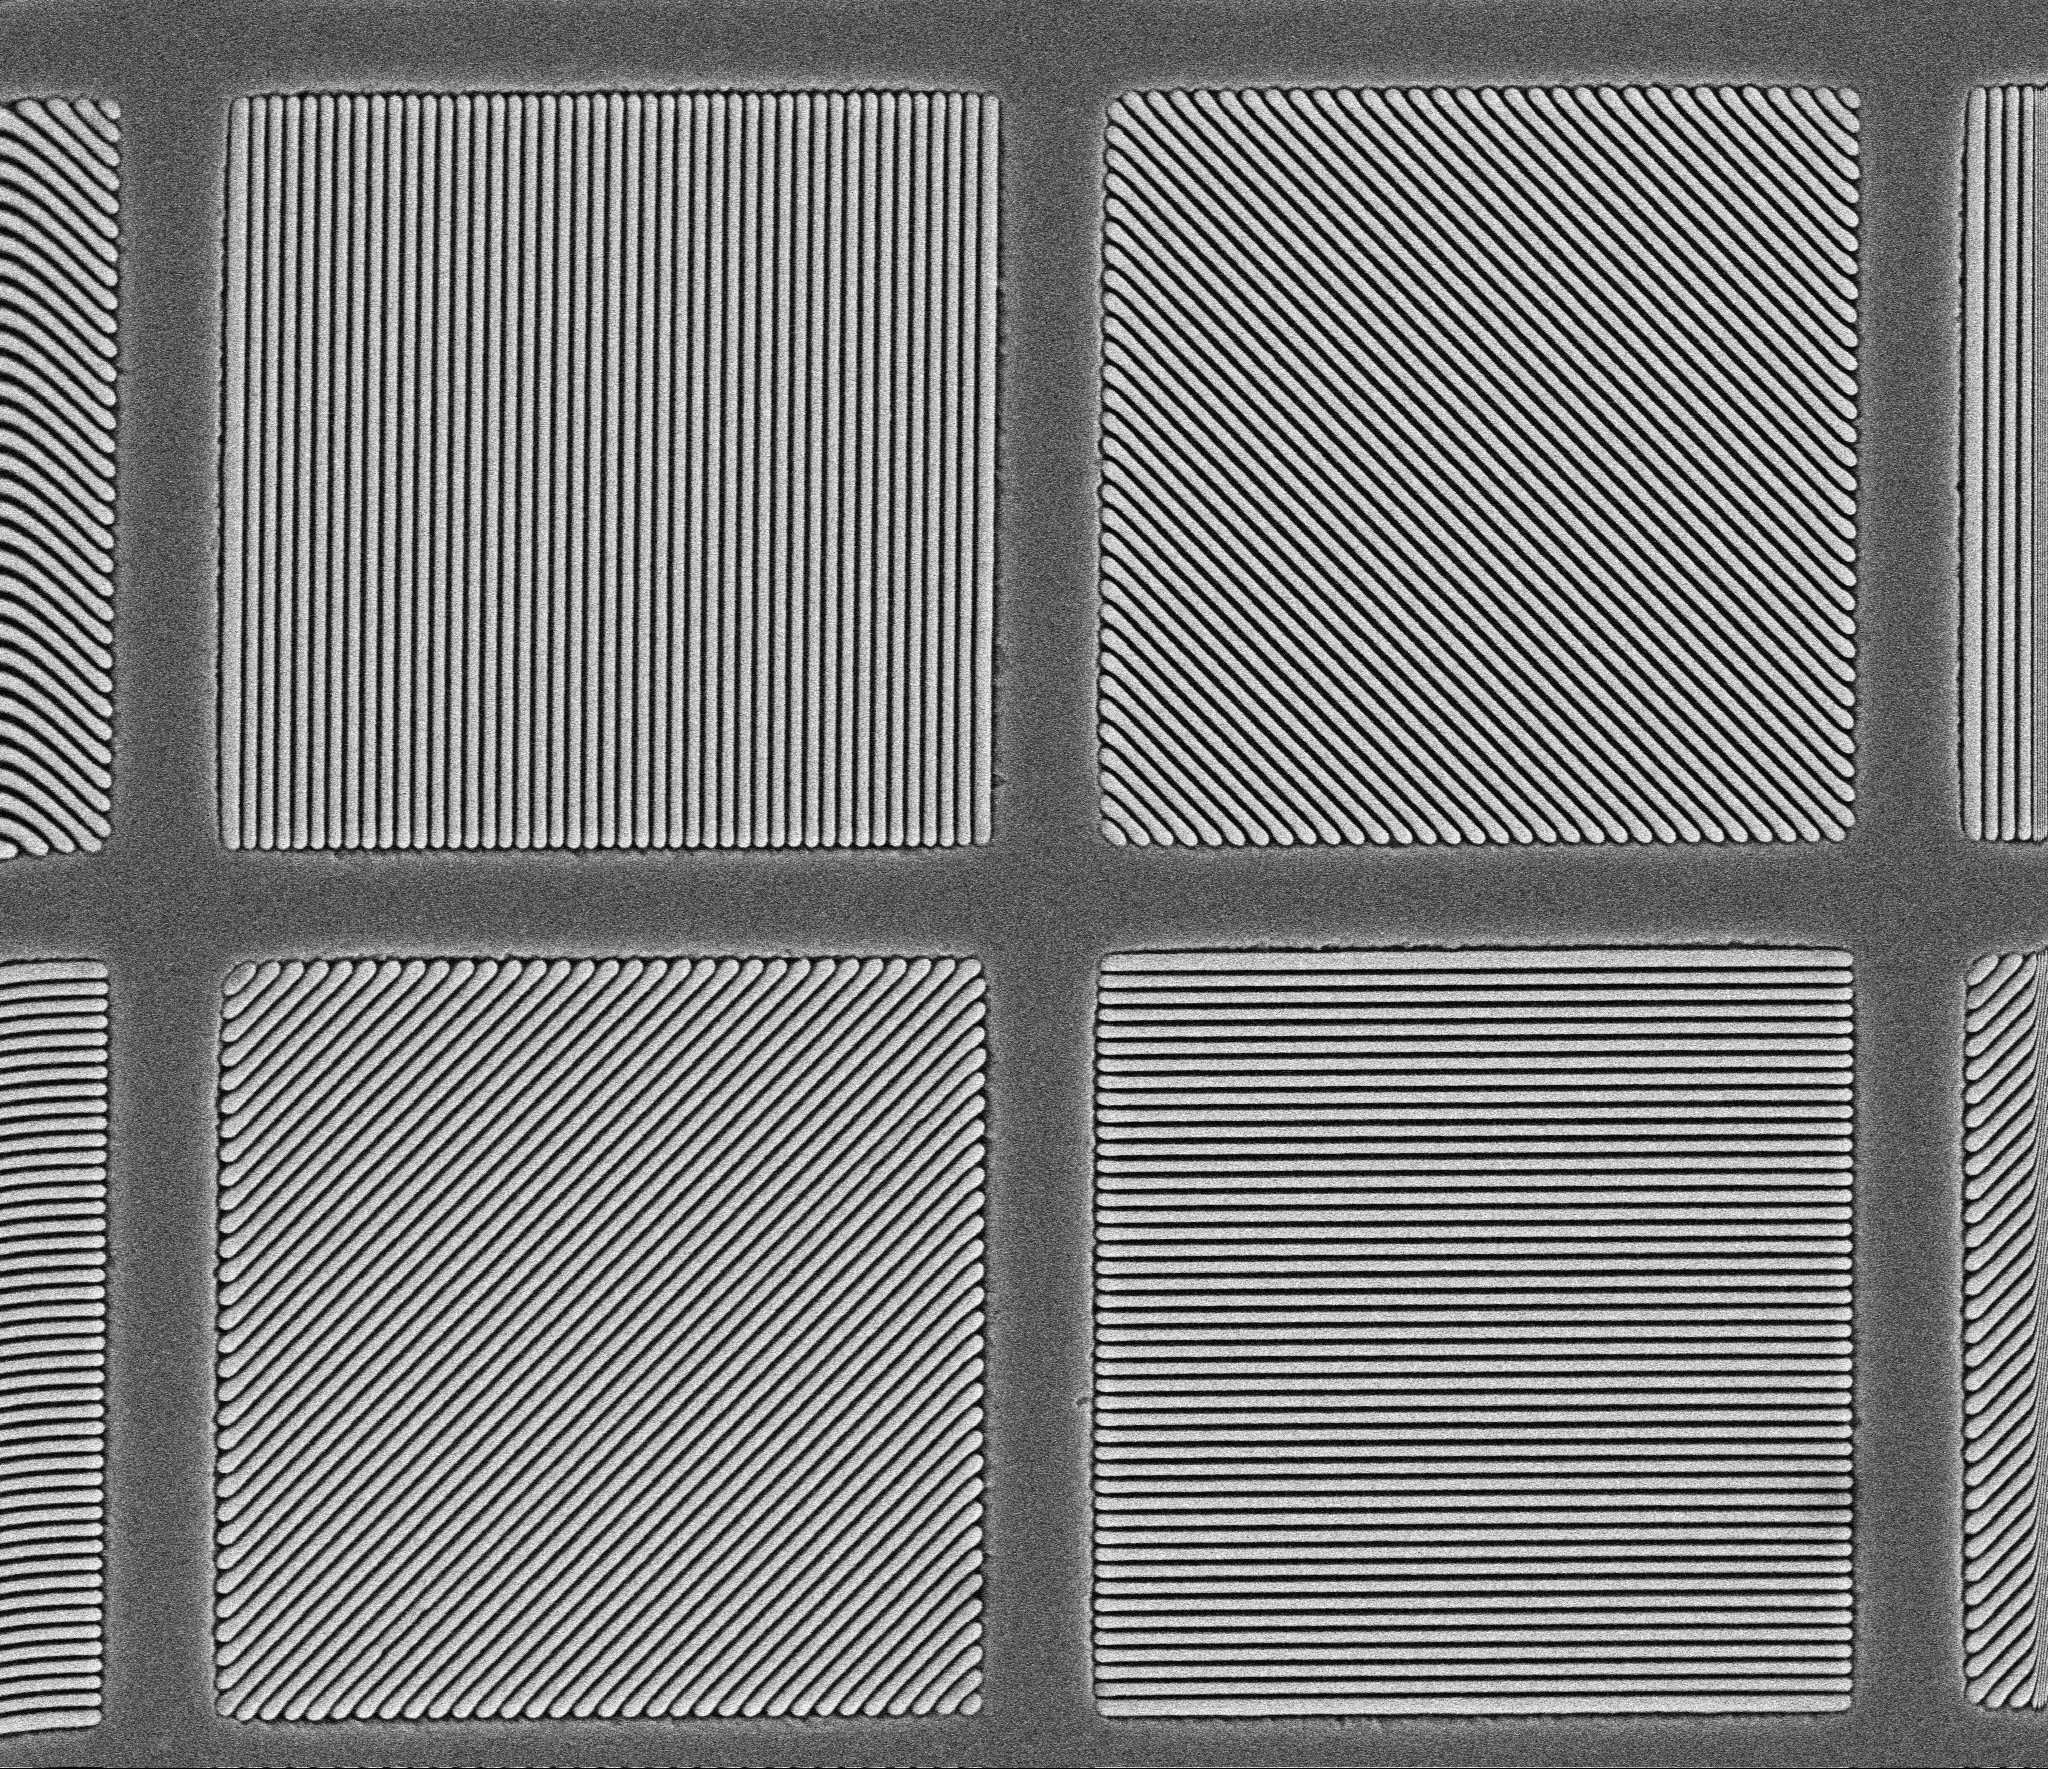 SEM image of a pixelated polarizer with typical 4-state array